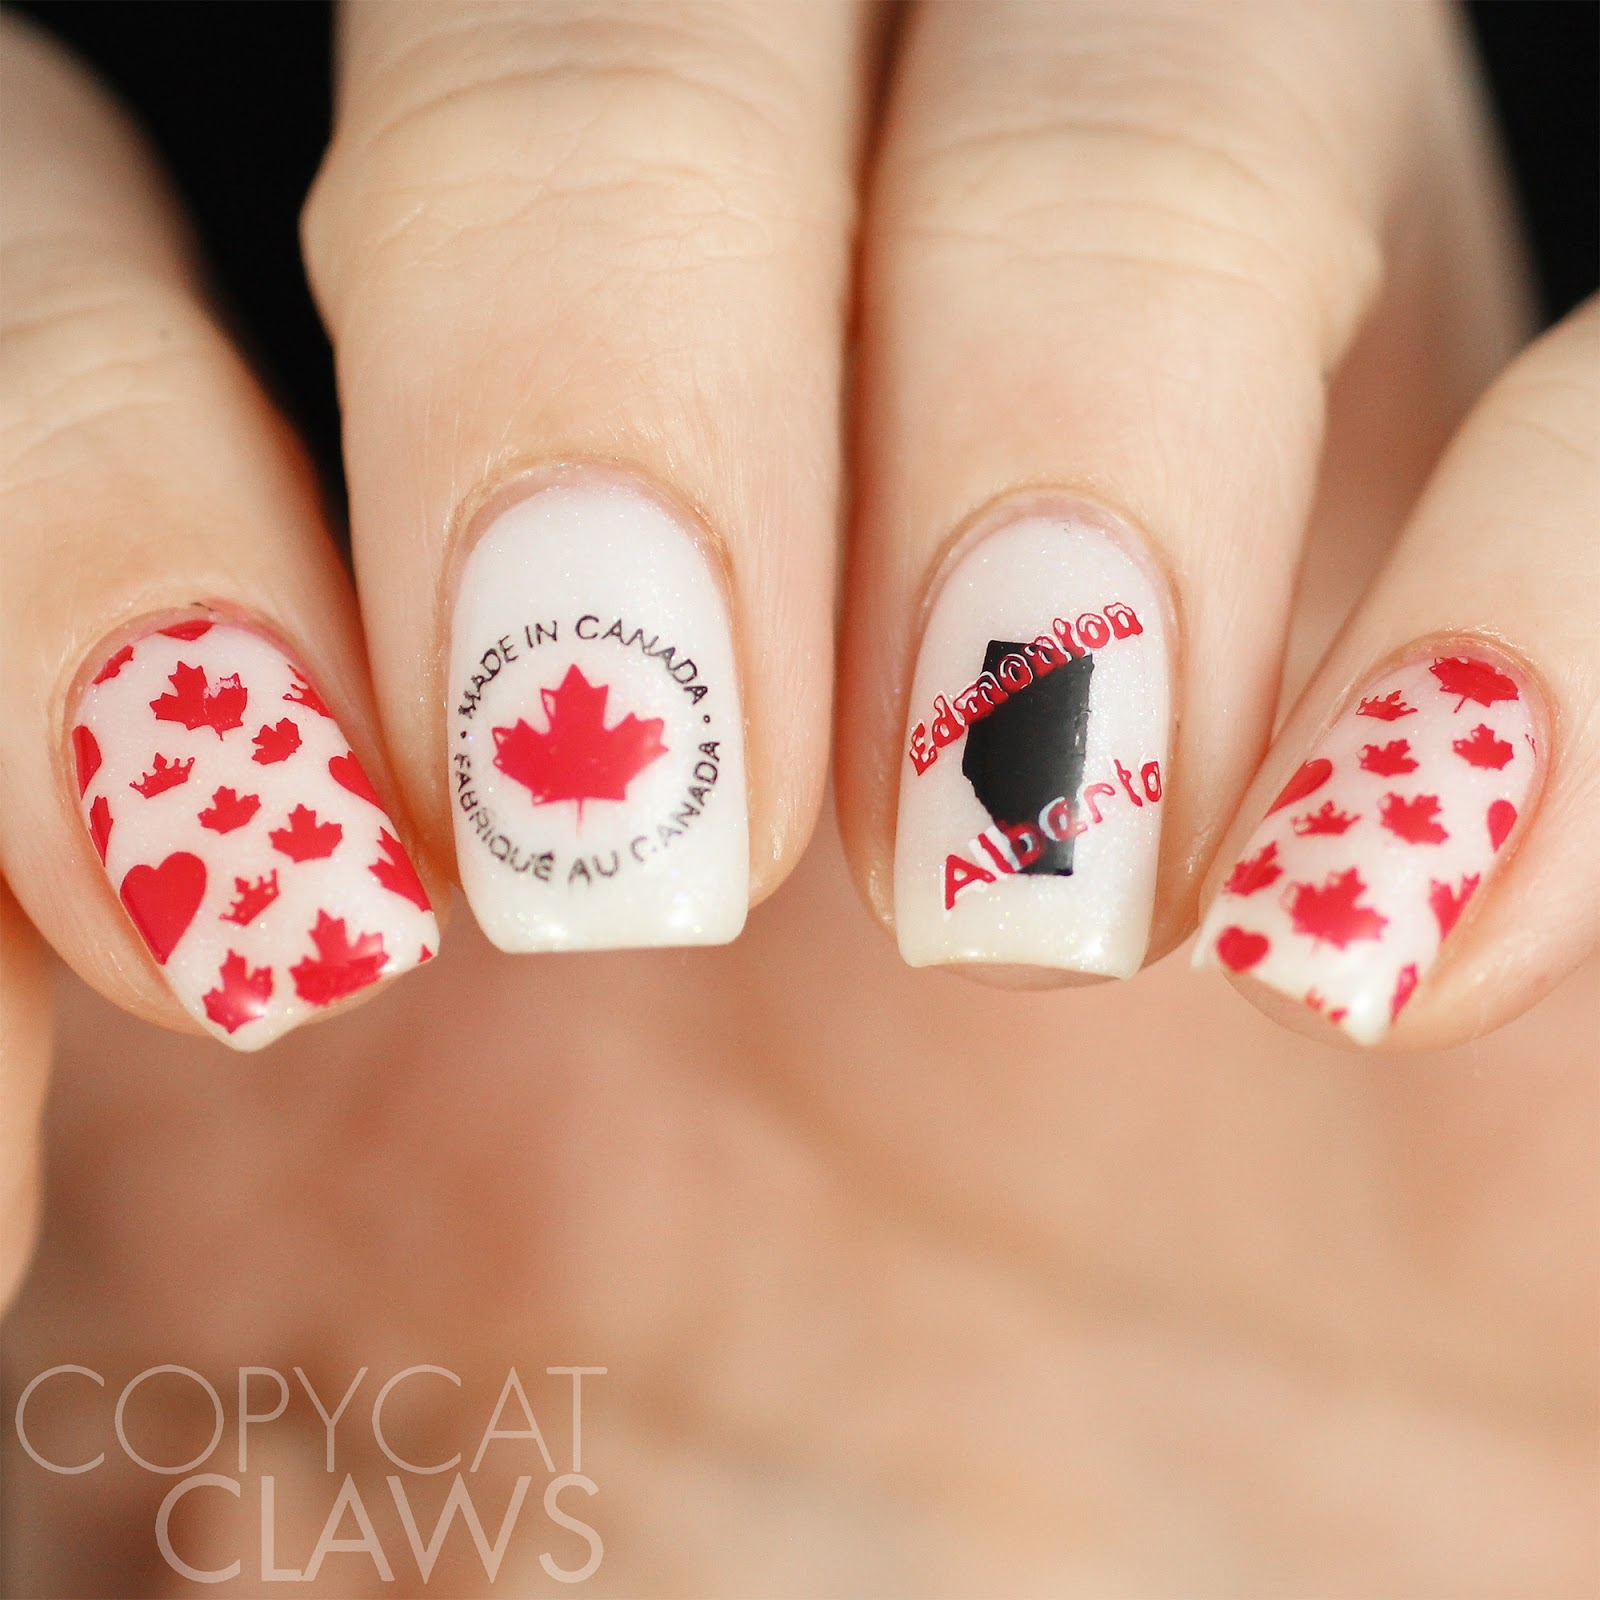 Copycat Claws: The Digit-al Dozen does Get To Know Me - Canada